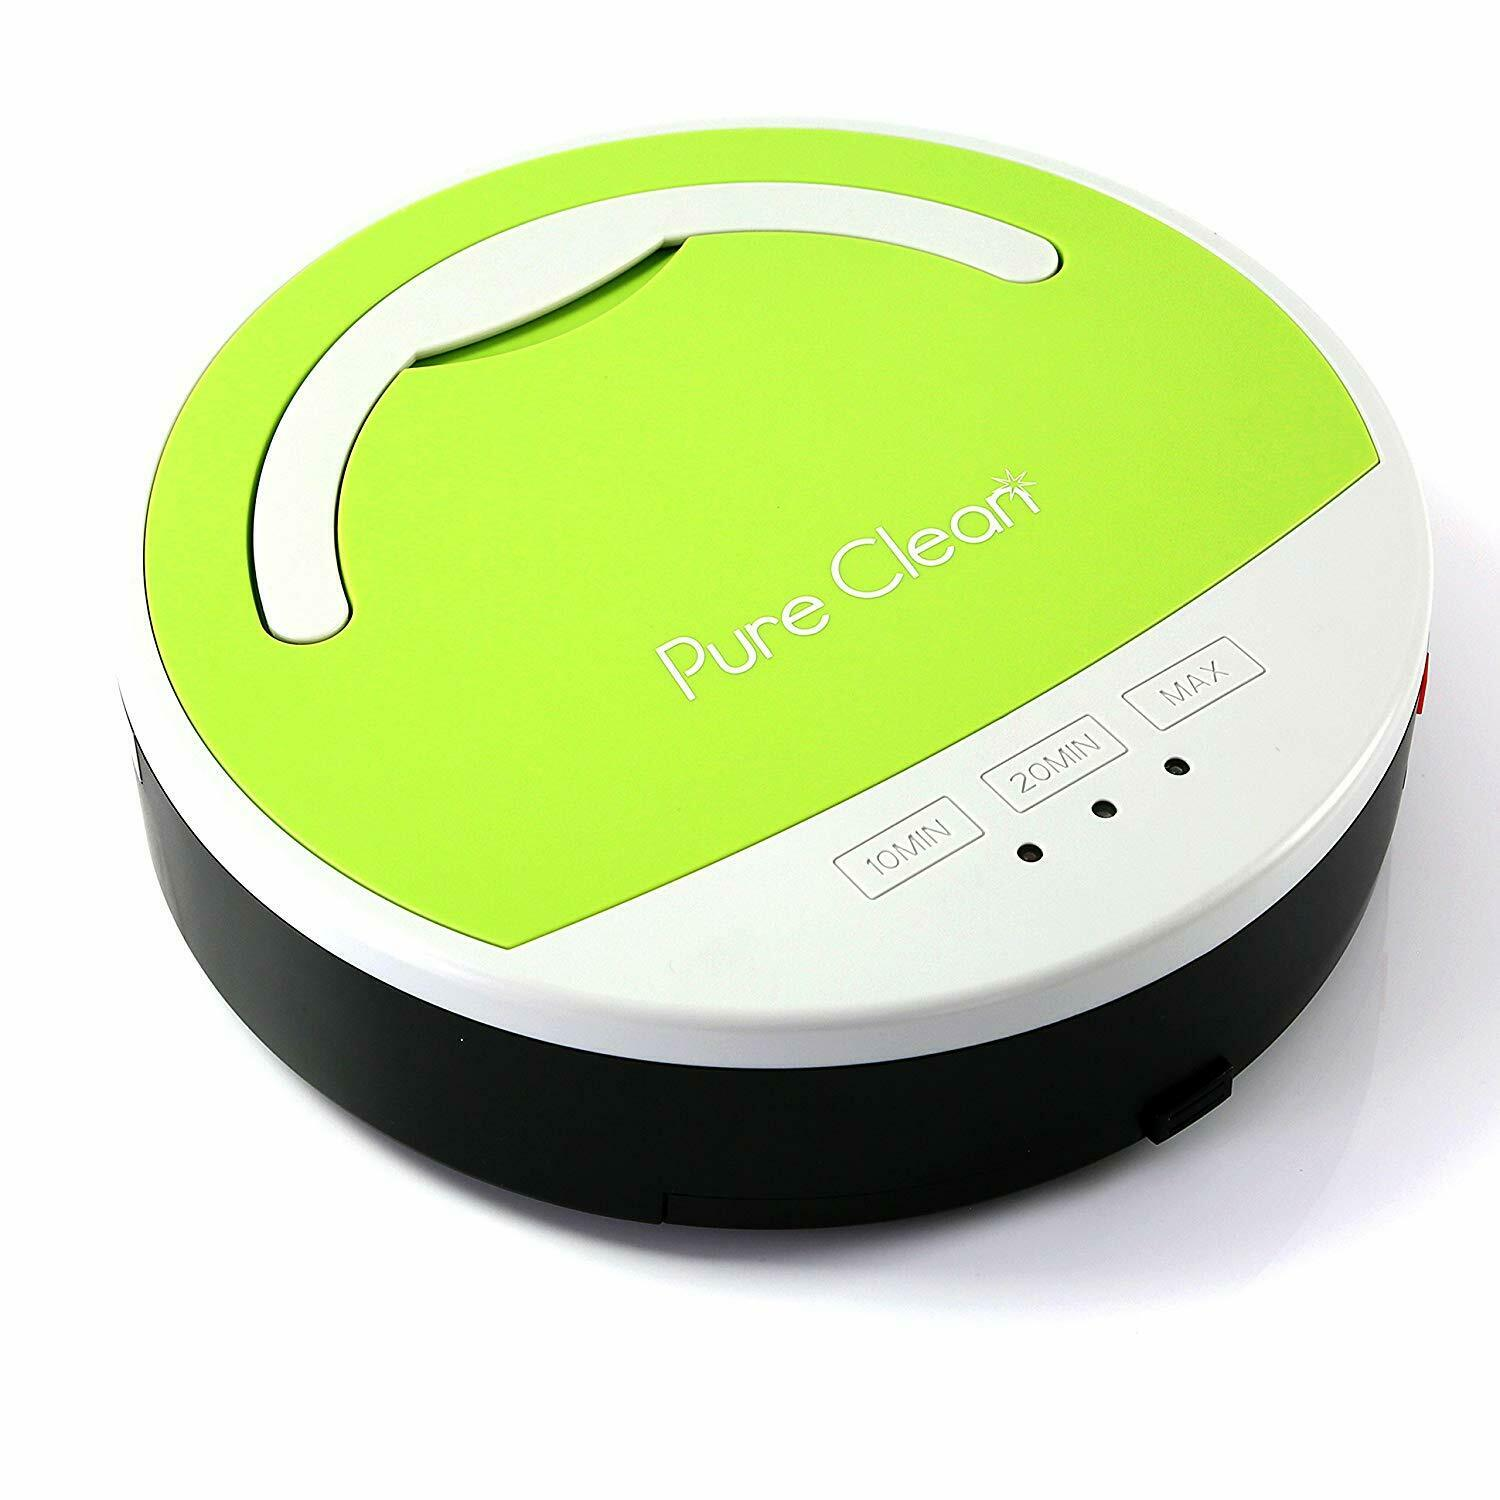 Pet Dog Hair Pure Clean Robotic Vacuum Cleaner for Tile Floors, Hardwood Floors